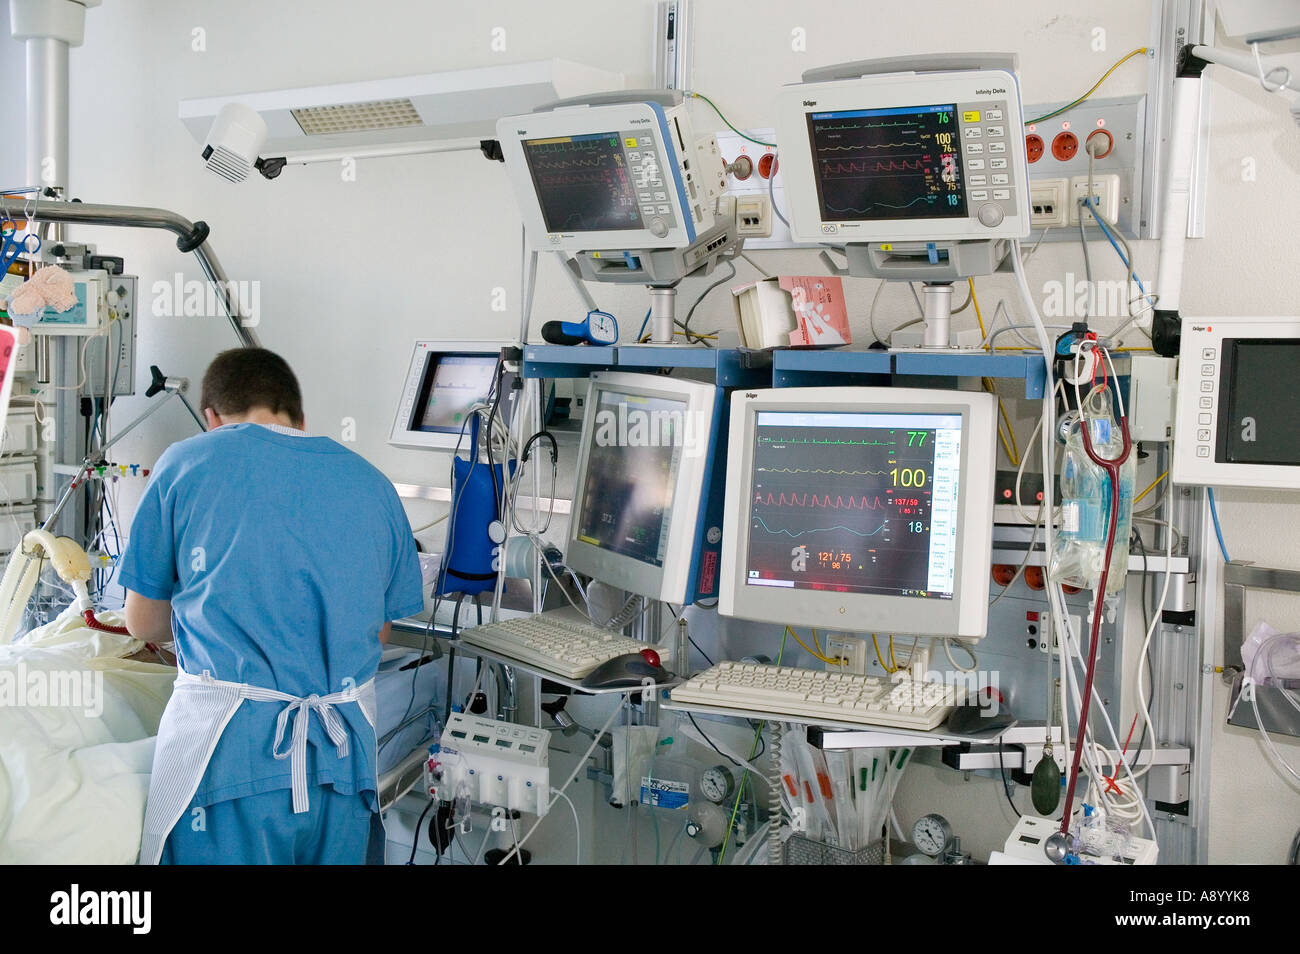 medical center medical personnel intensive care equipment - Stock Image